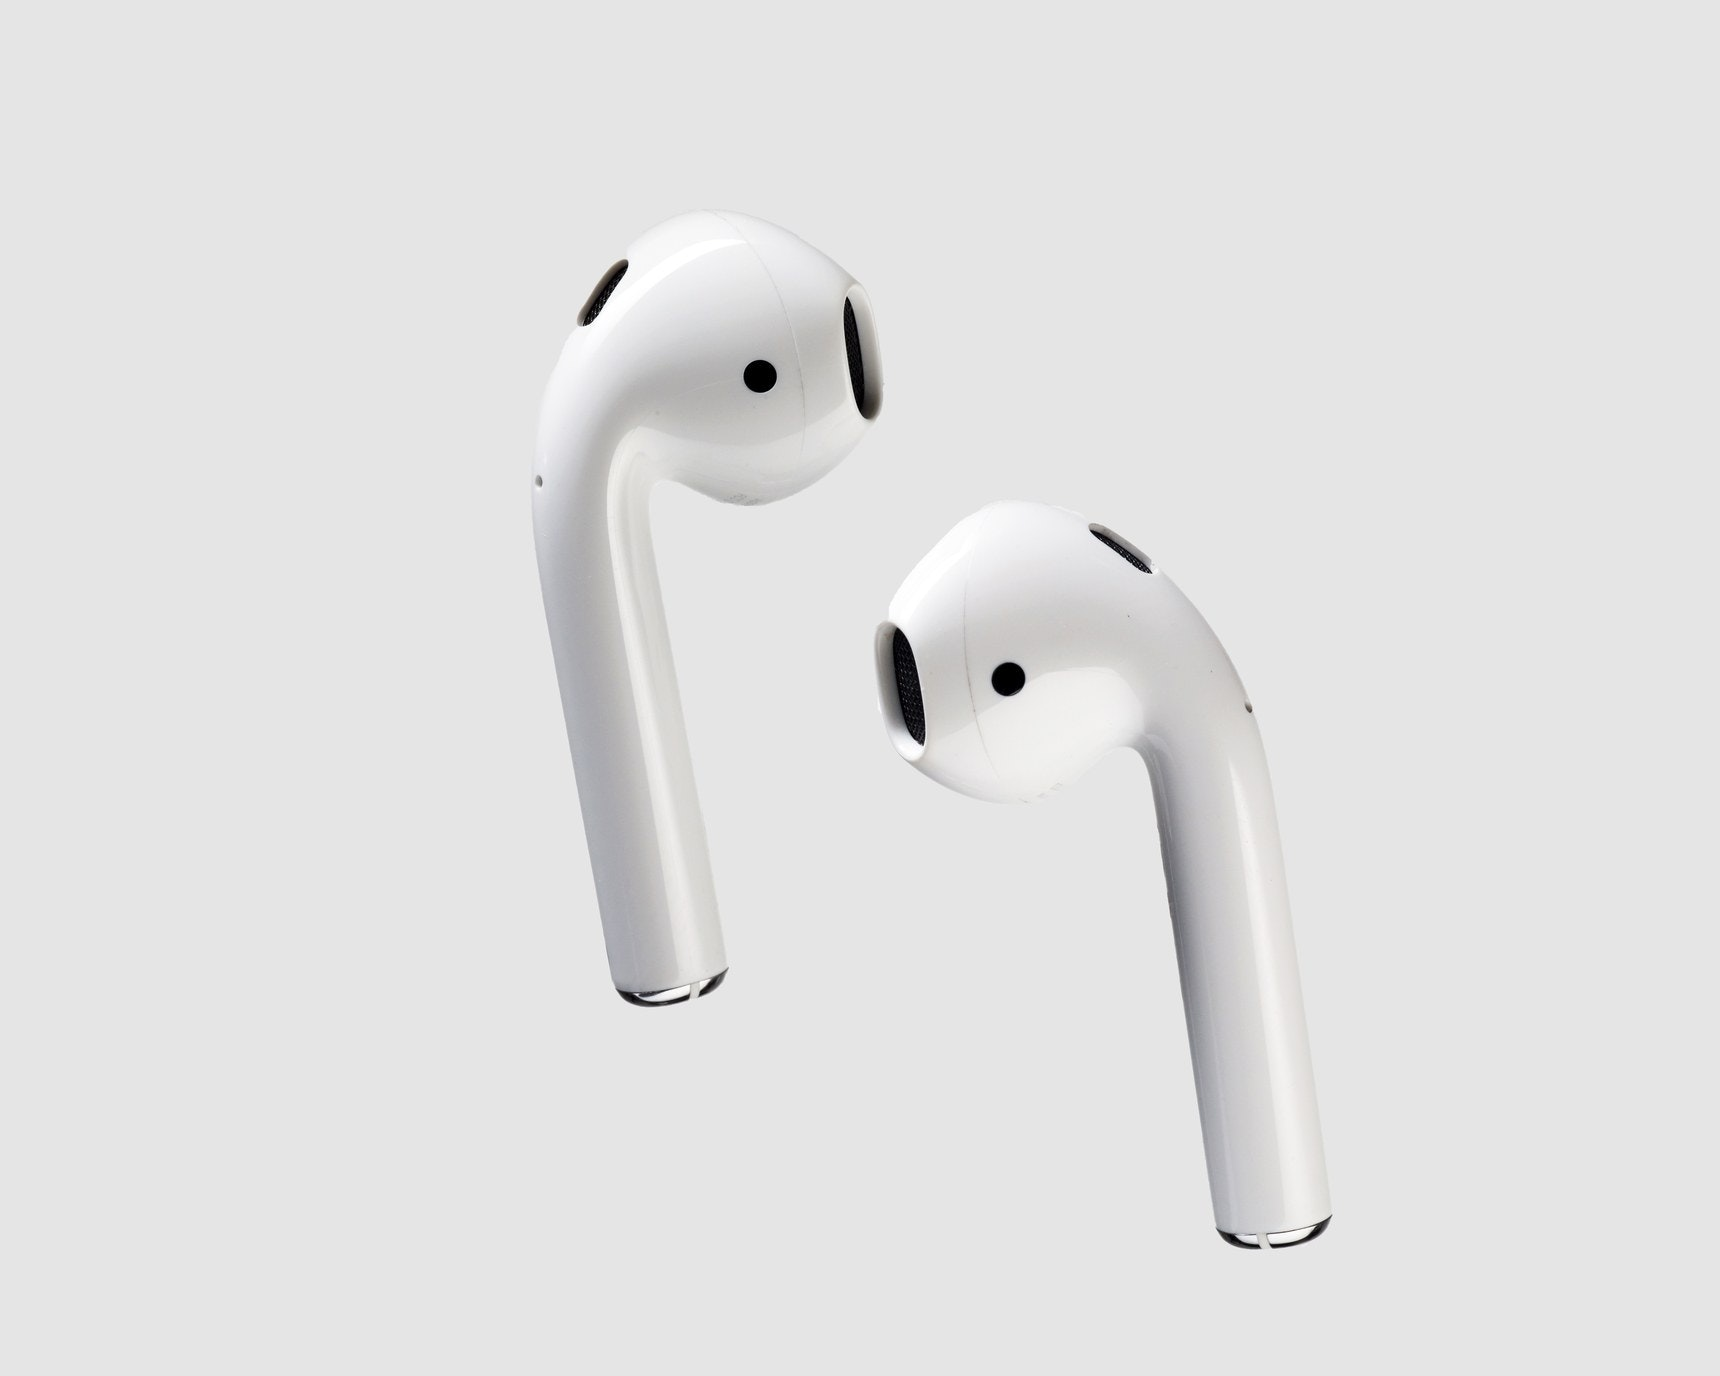 Apple AirPods In-Ear Bluetooth Headphones with Mic (MMEF2C/A) - White : Earbu